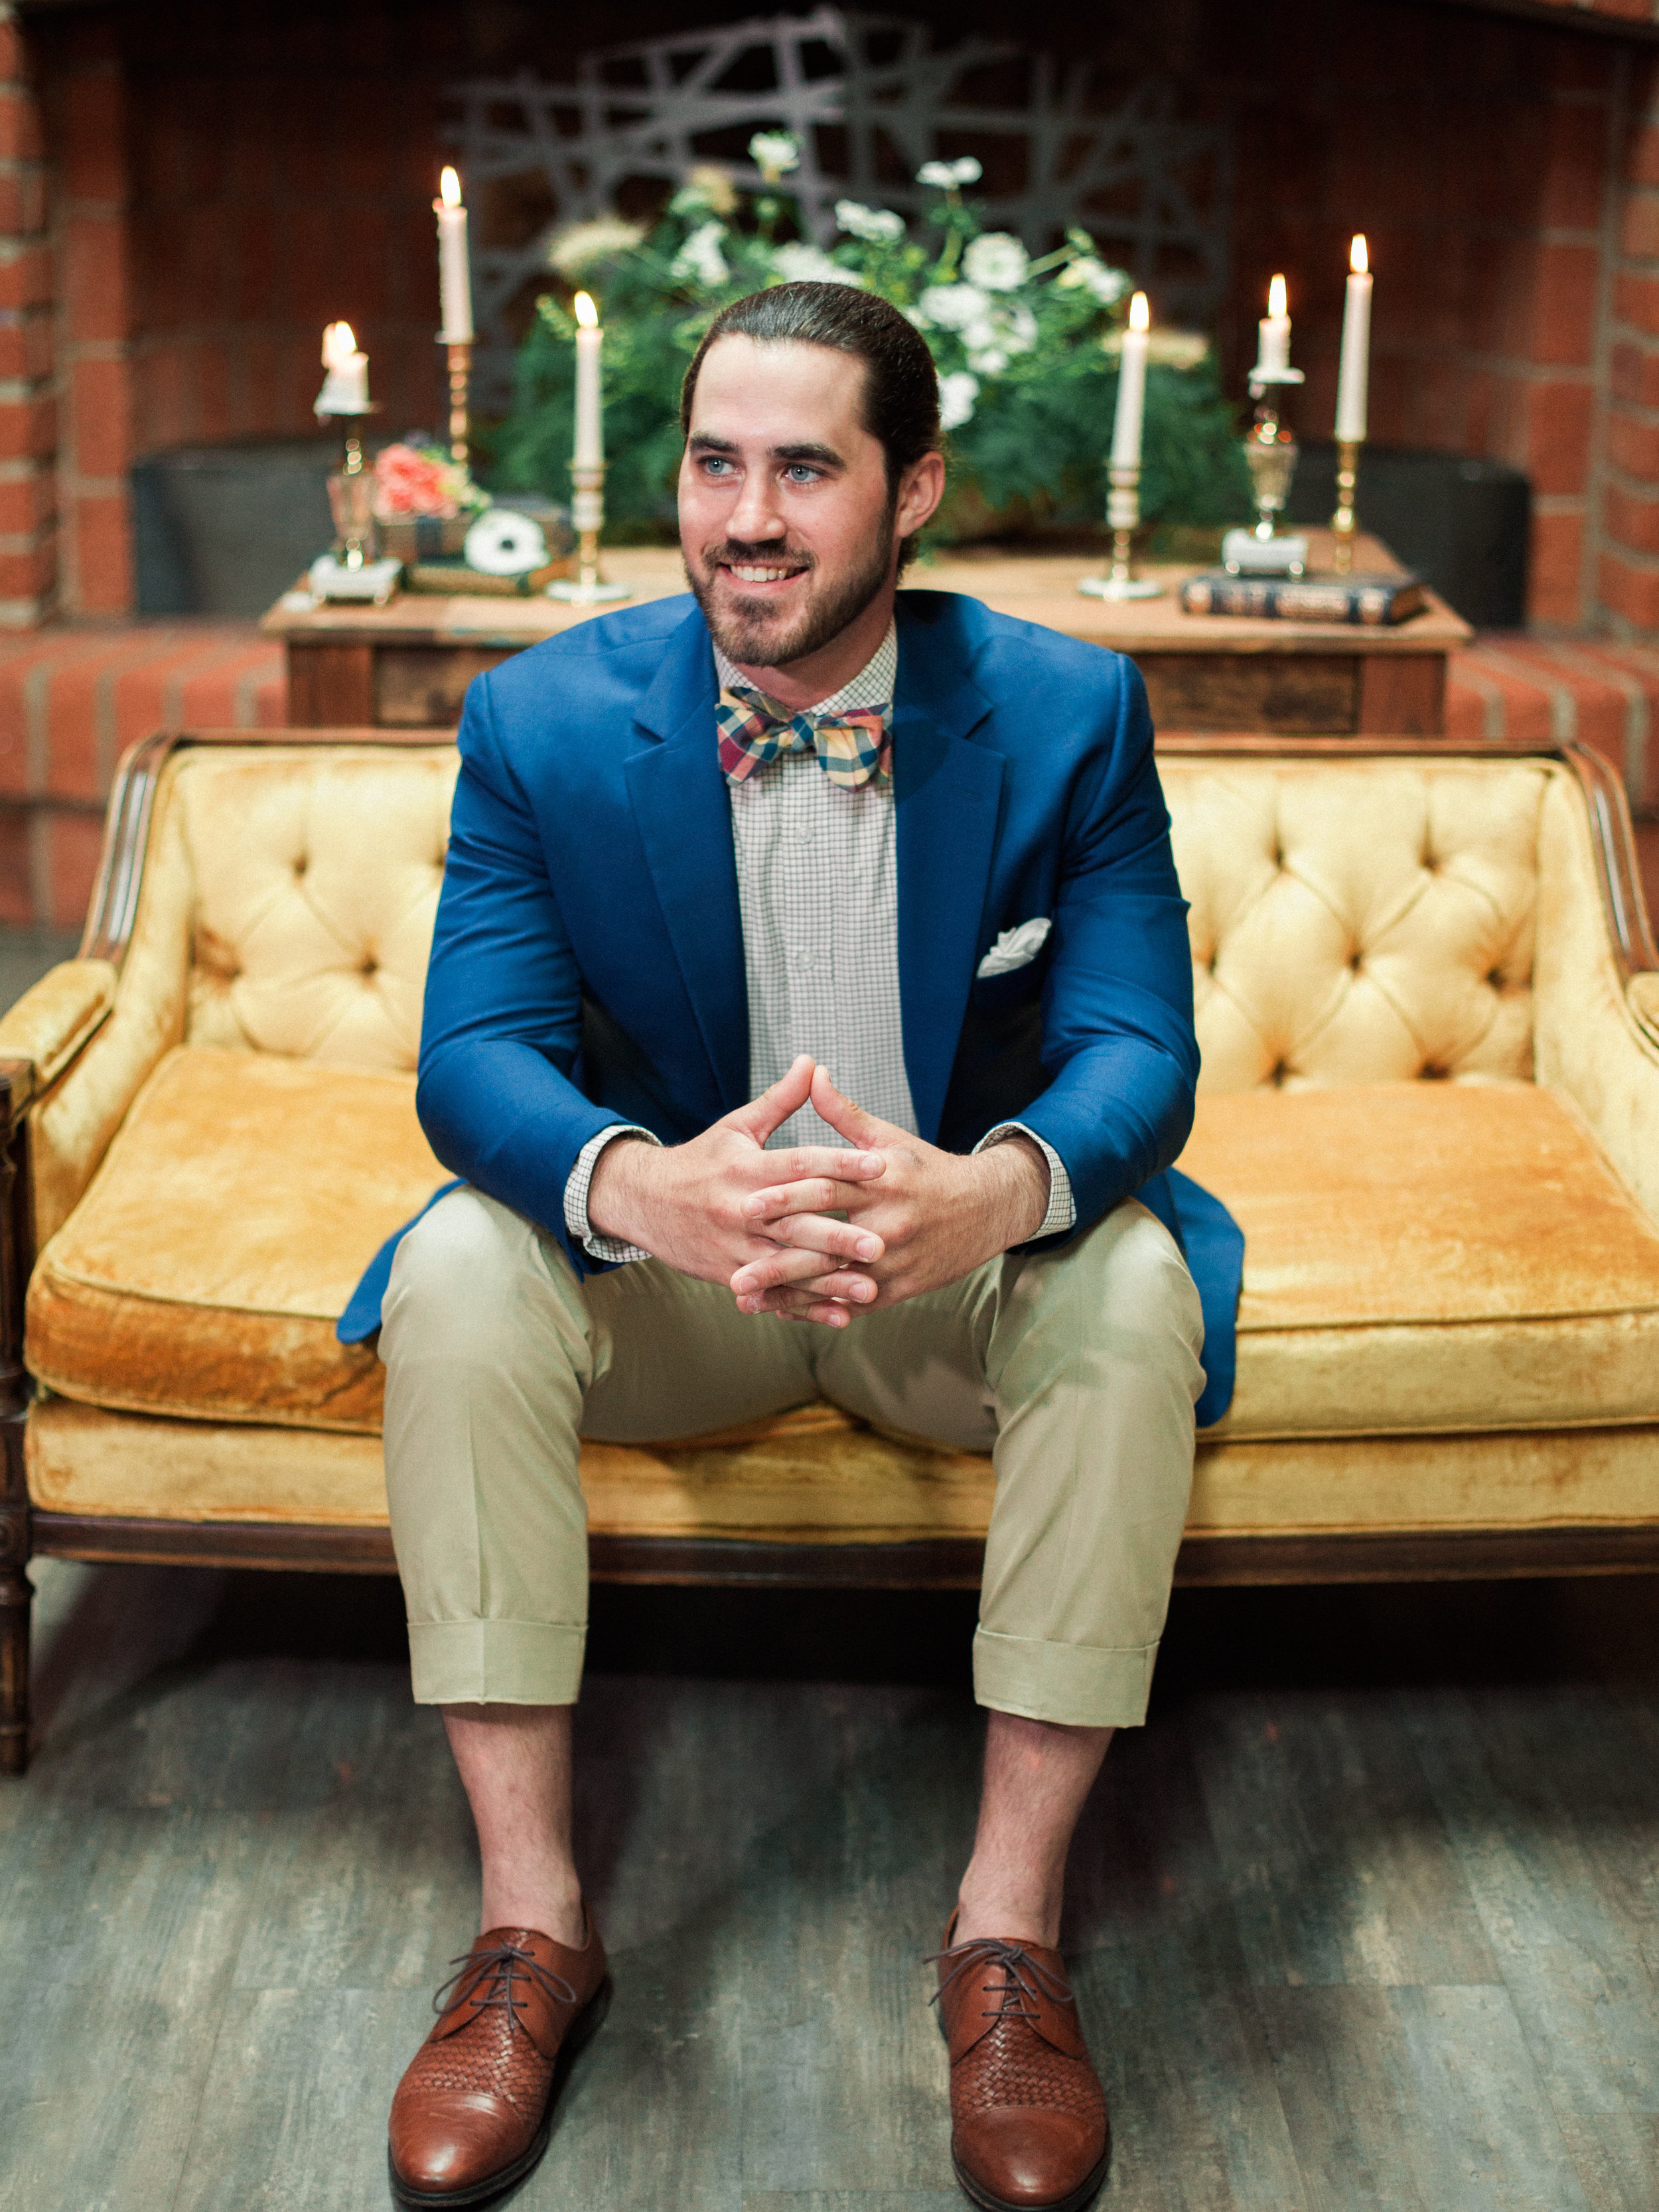 The groom sits for a photo shoot before his wedding in The Commons.